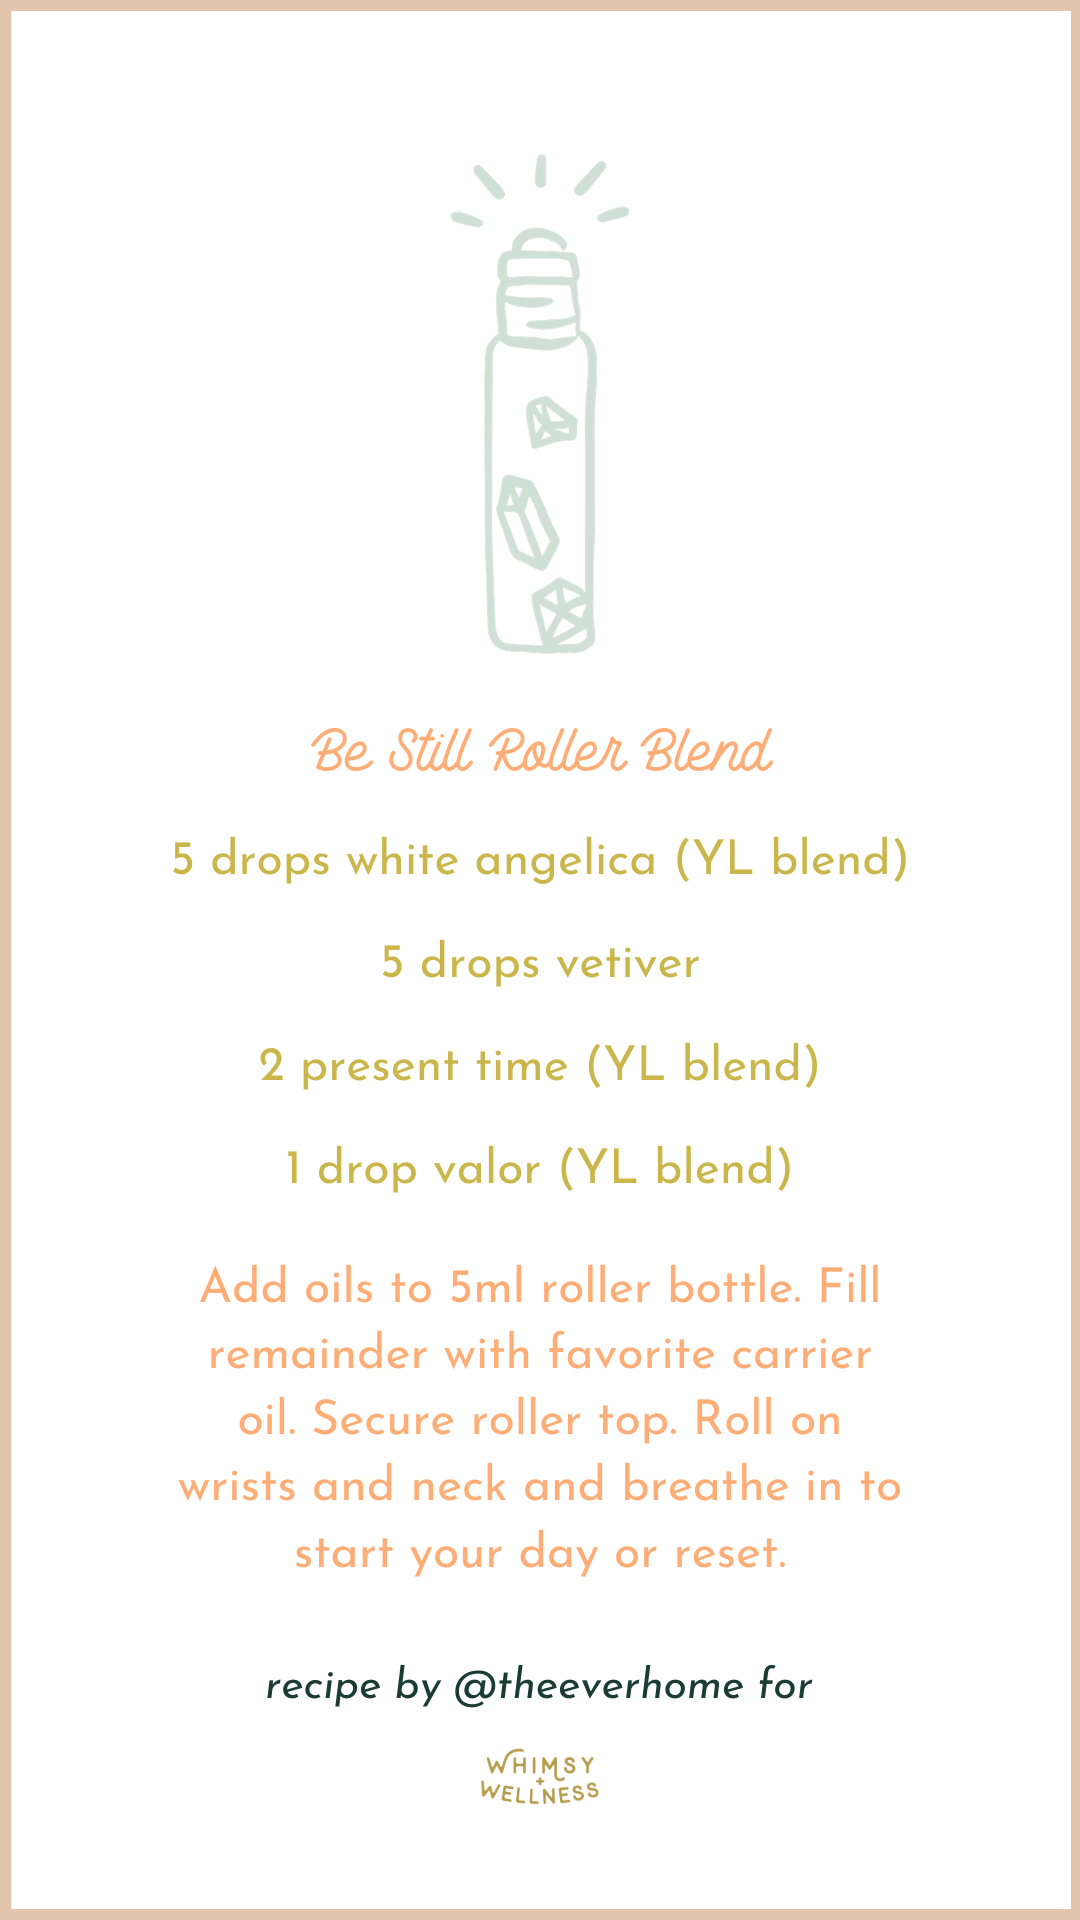 Be Still Roller Blend with young living essential oils Whimsy + Wellness